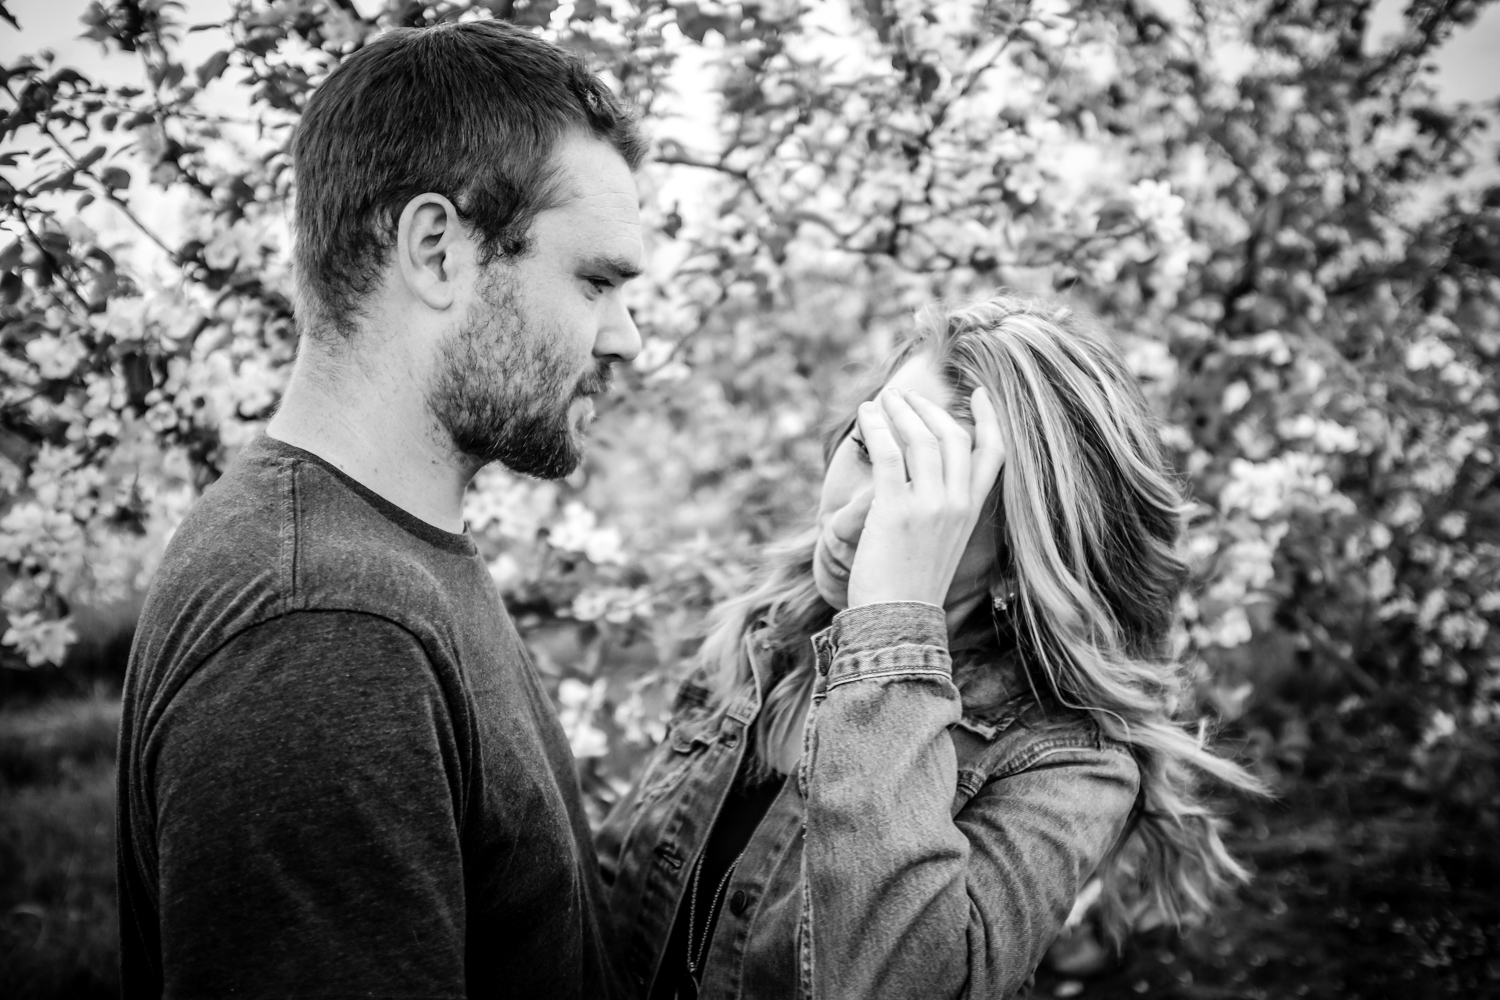 Couples photo - Fun Ways to Photograph Couples That are a Bit Awkward